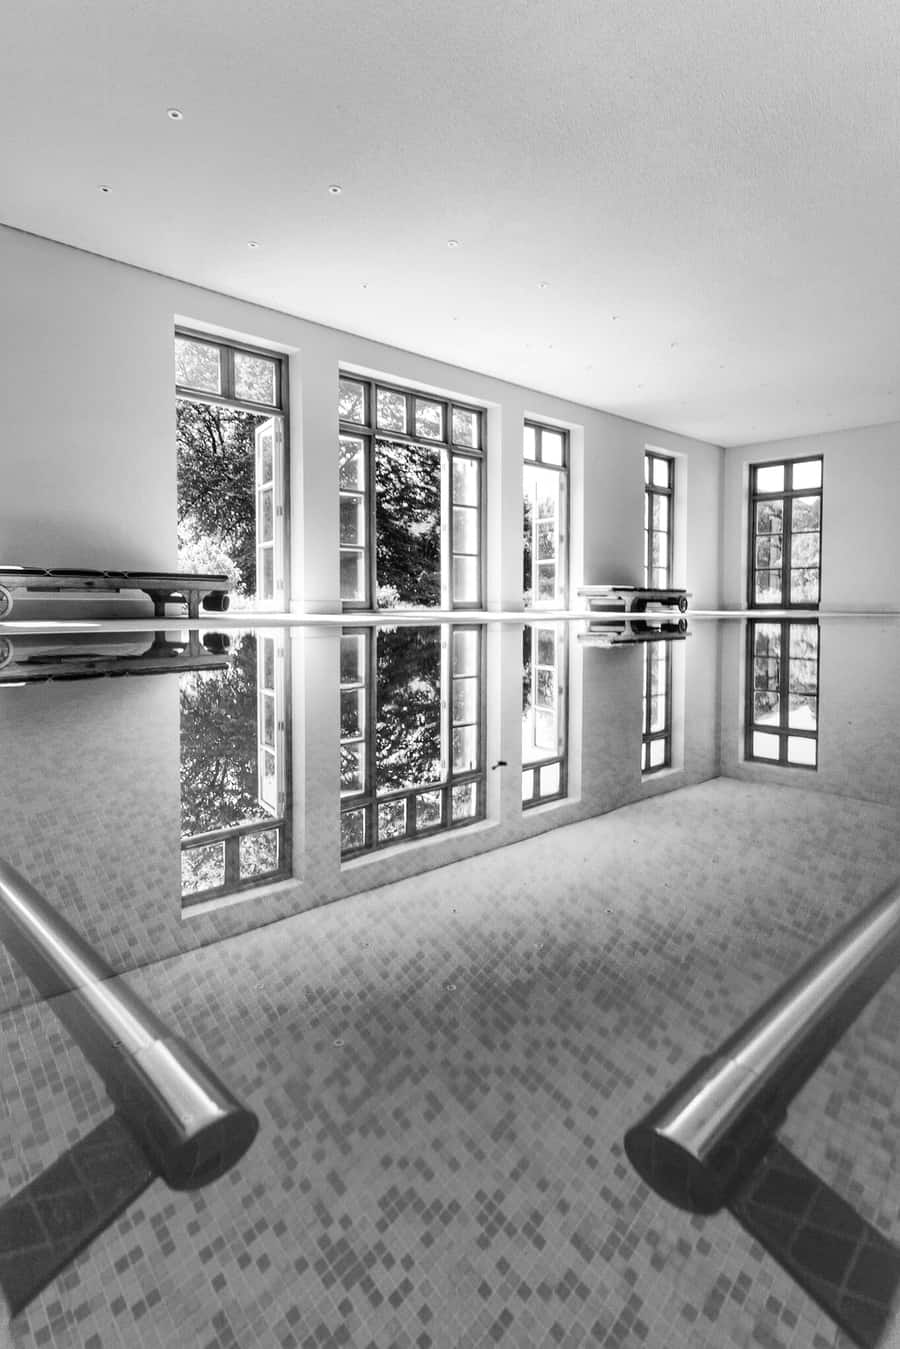 The black and white version by Rick McEvoy interior photographer in Dorset  This is a   swimming pool   in a stunning Dorset country house.  One picture. Three edits. Which do you prefer?  Talking of swimming pools check out this article     Awe-Inspiring Above Ground Pools for Your Own Backyard Oasis    Great ideas for anyone thinking of building their own swimming pool.